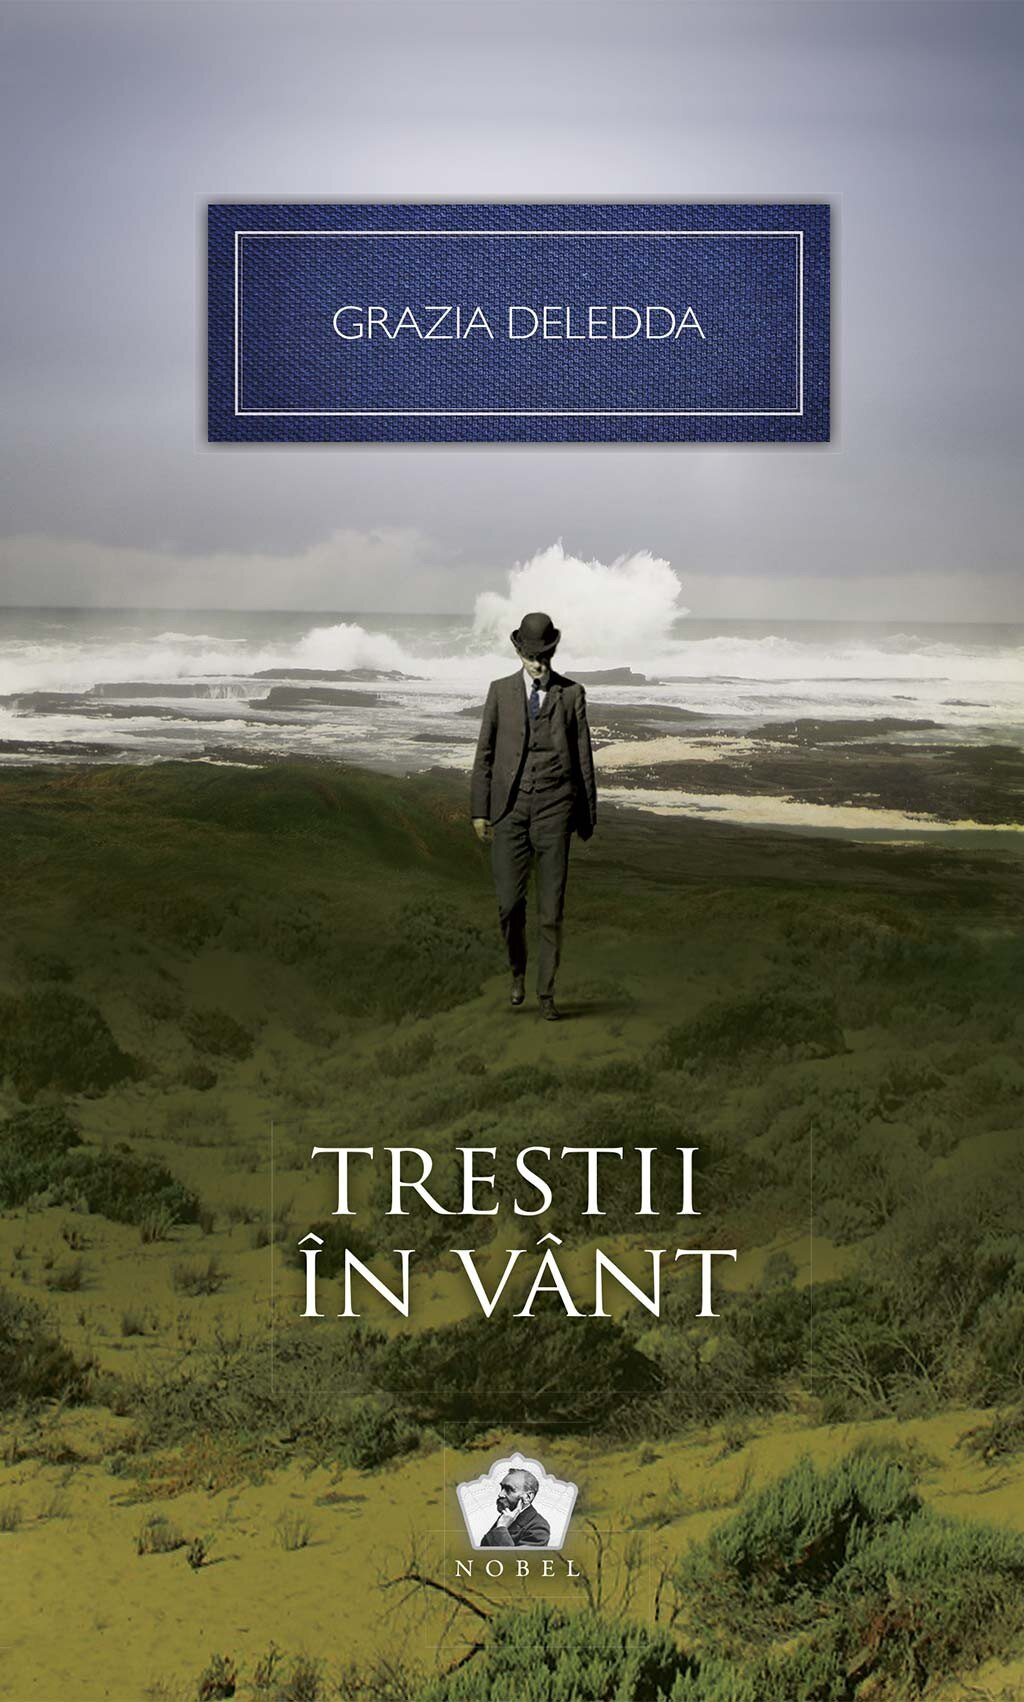 Trestii in vant PDF (Download eBook)